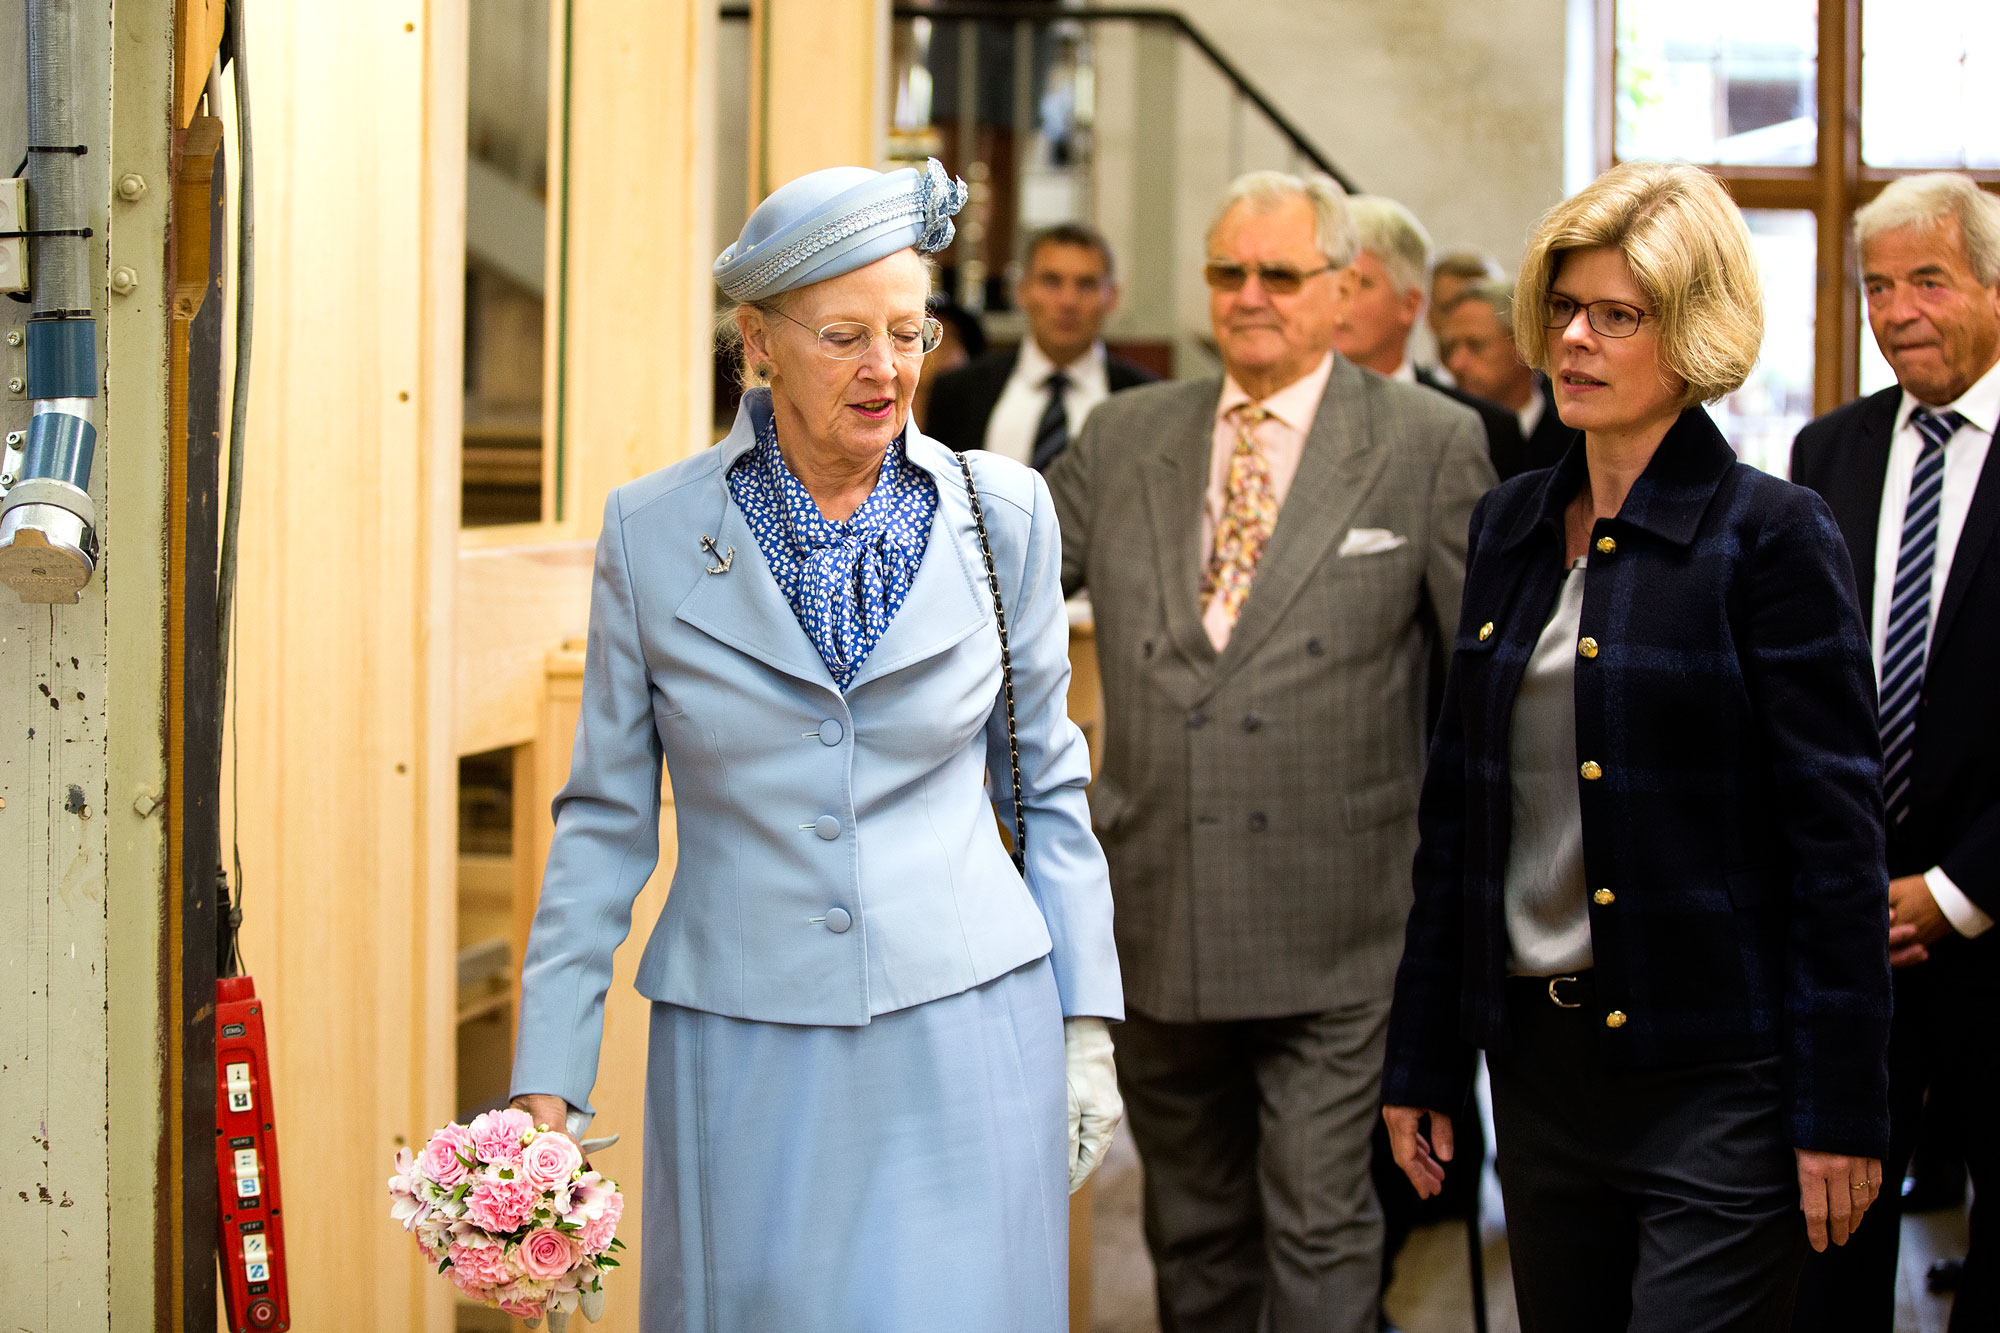 HM The Queen Margrethe and Prince Henrik visits Marcussen & Søn